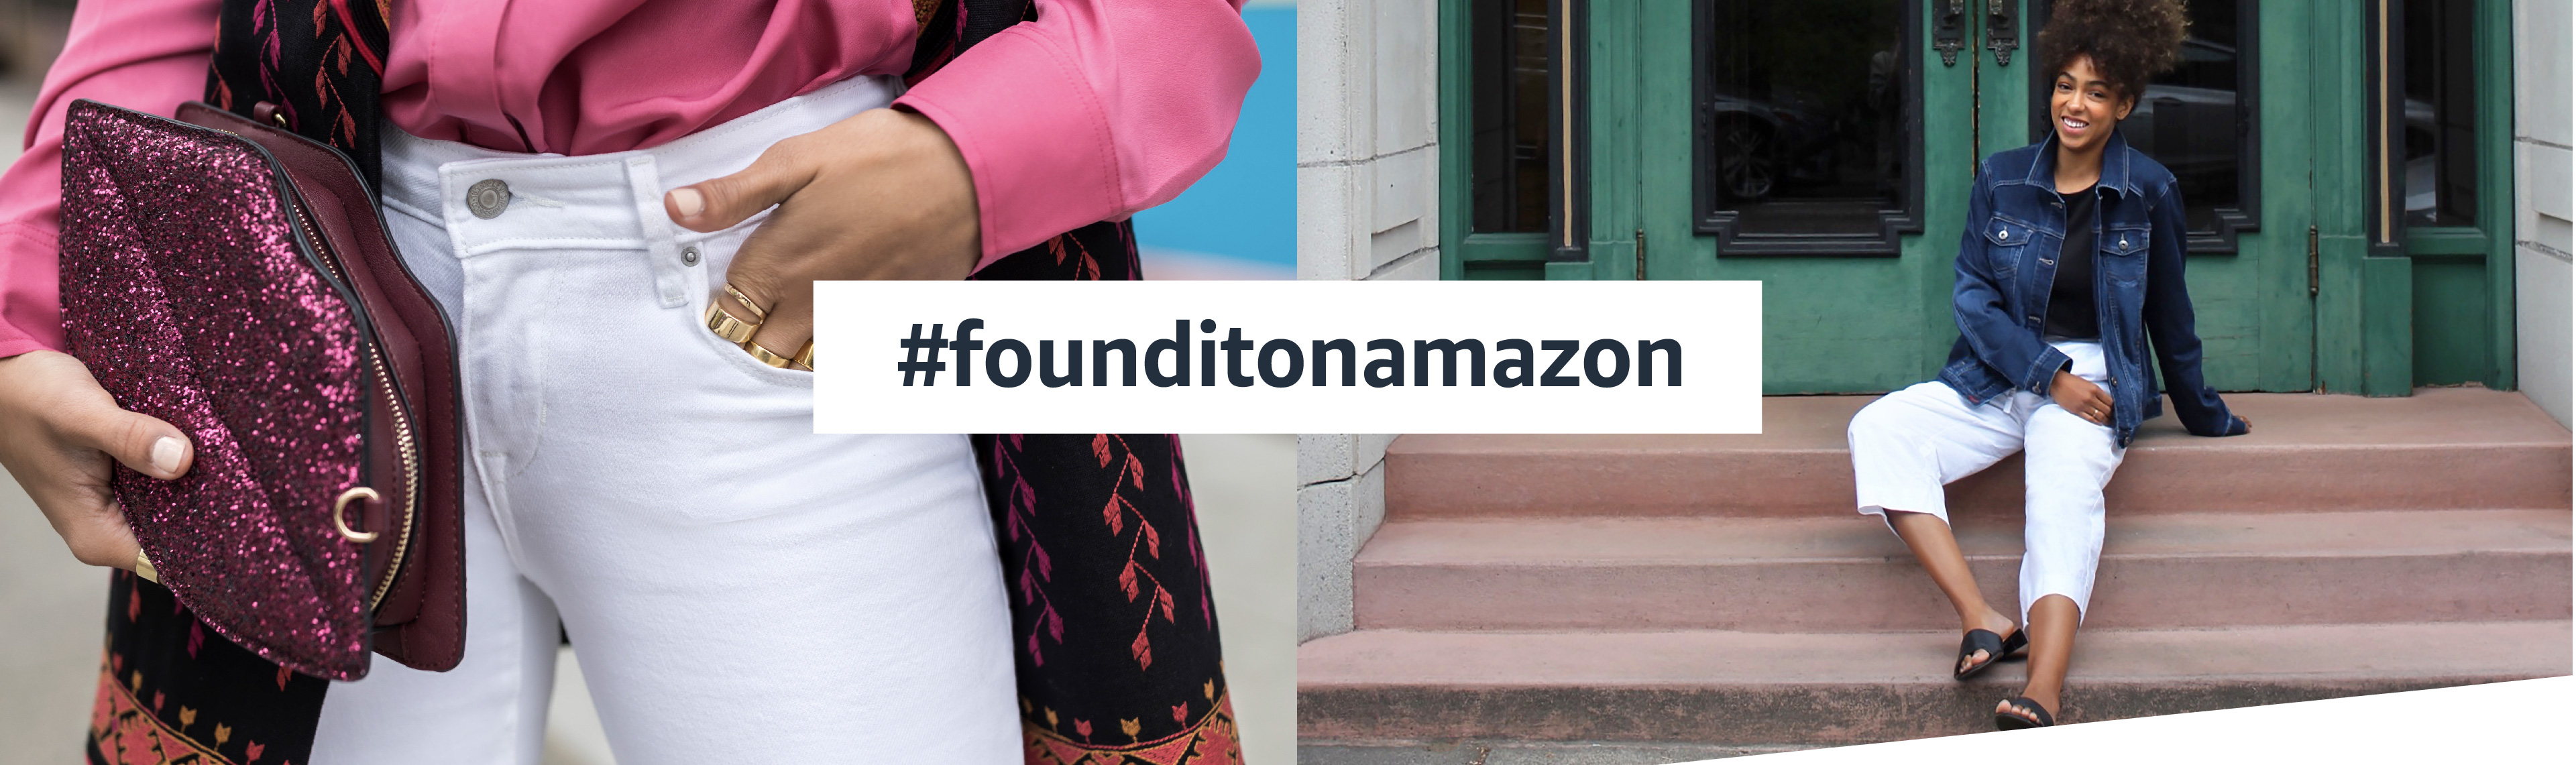 #founditonamazon